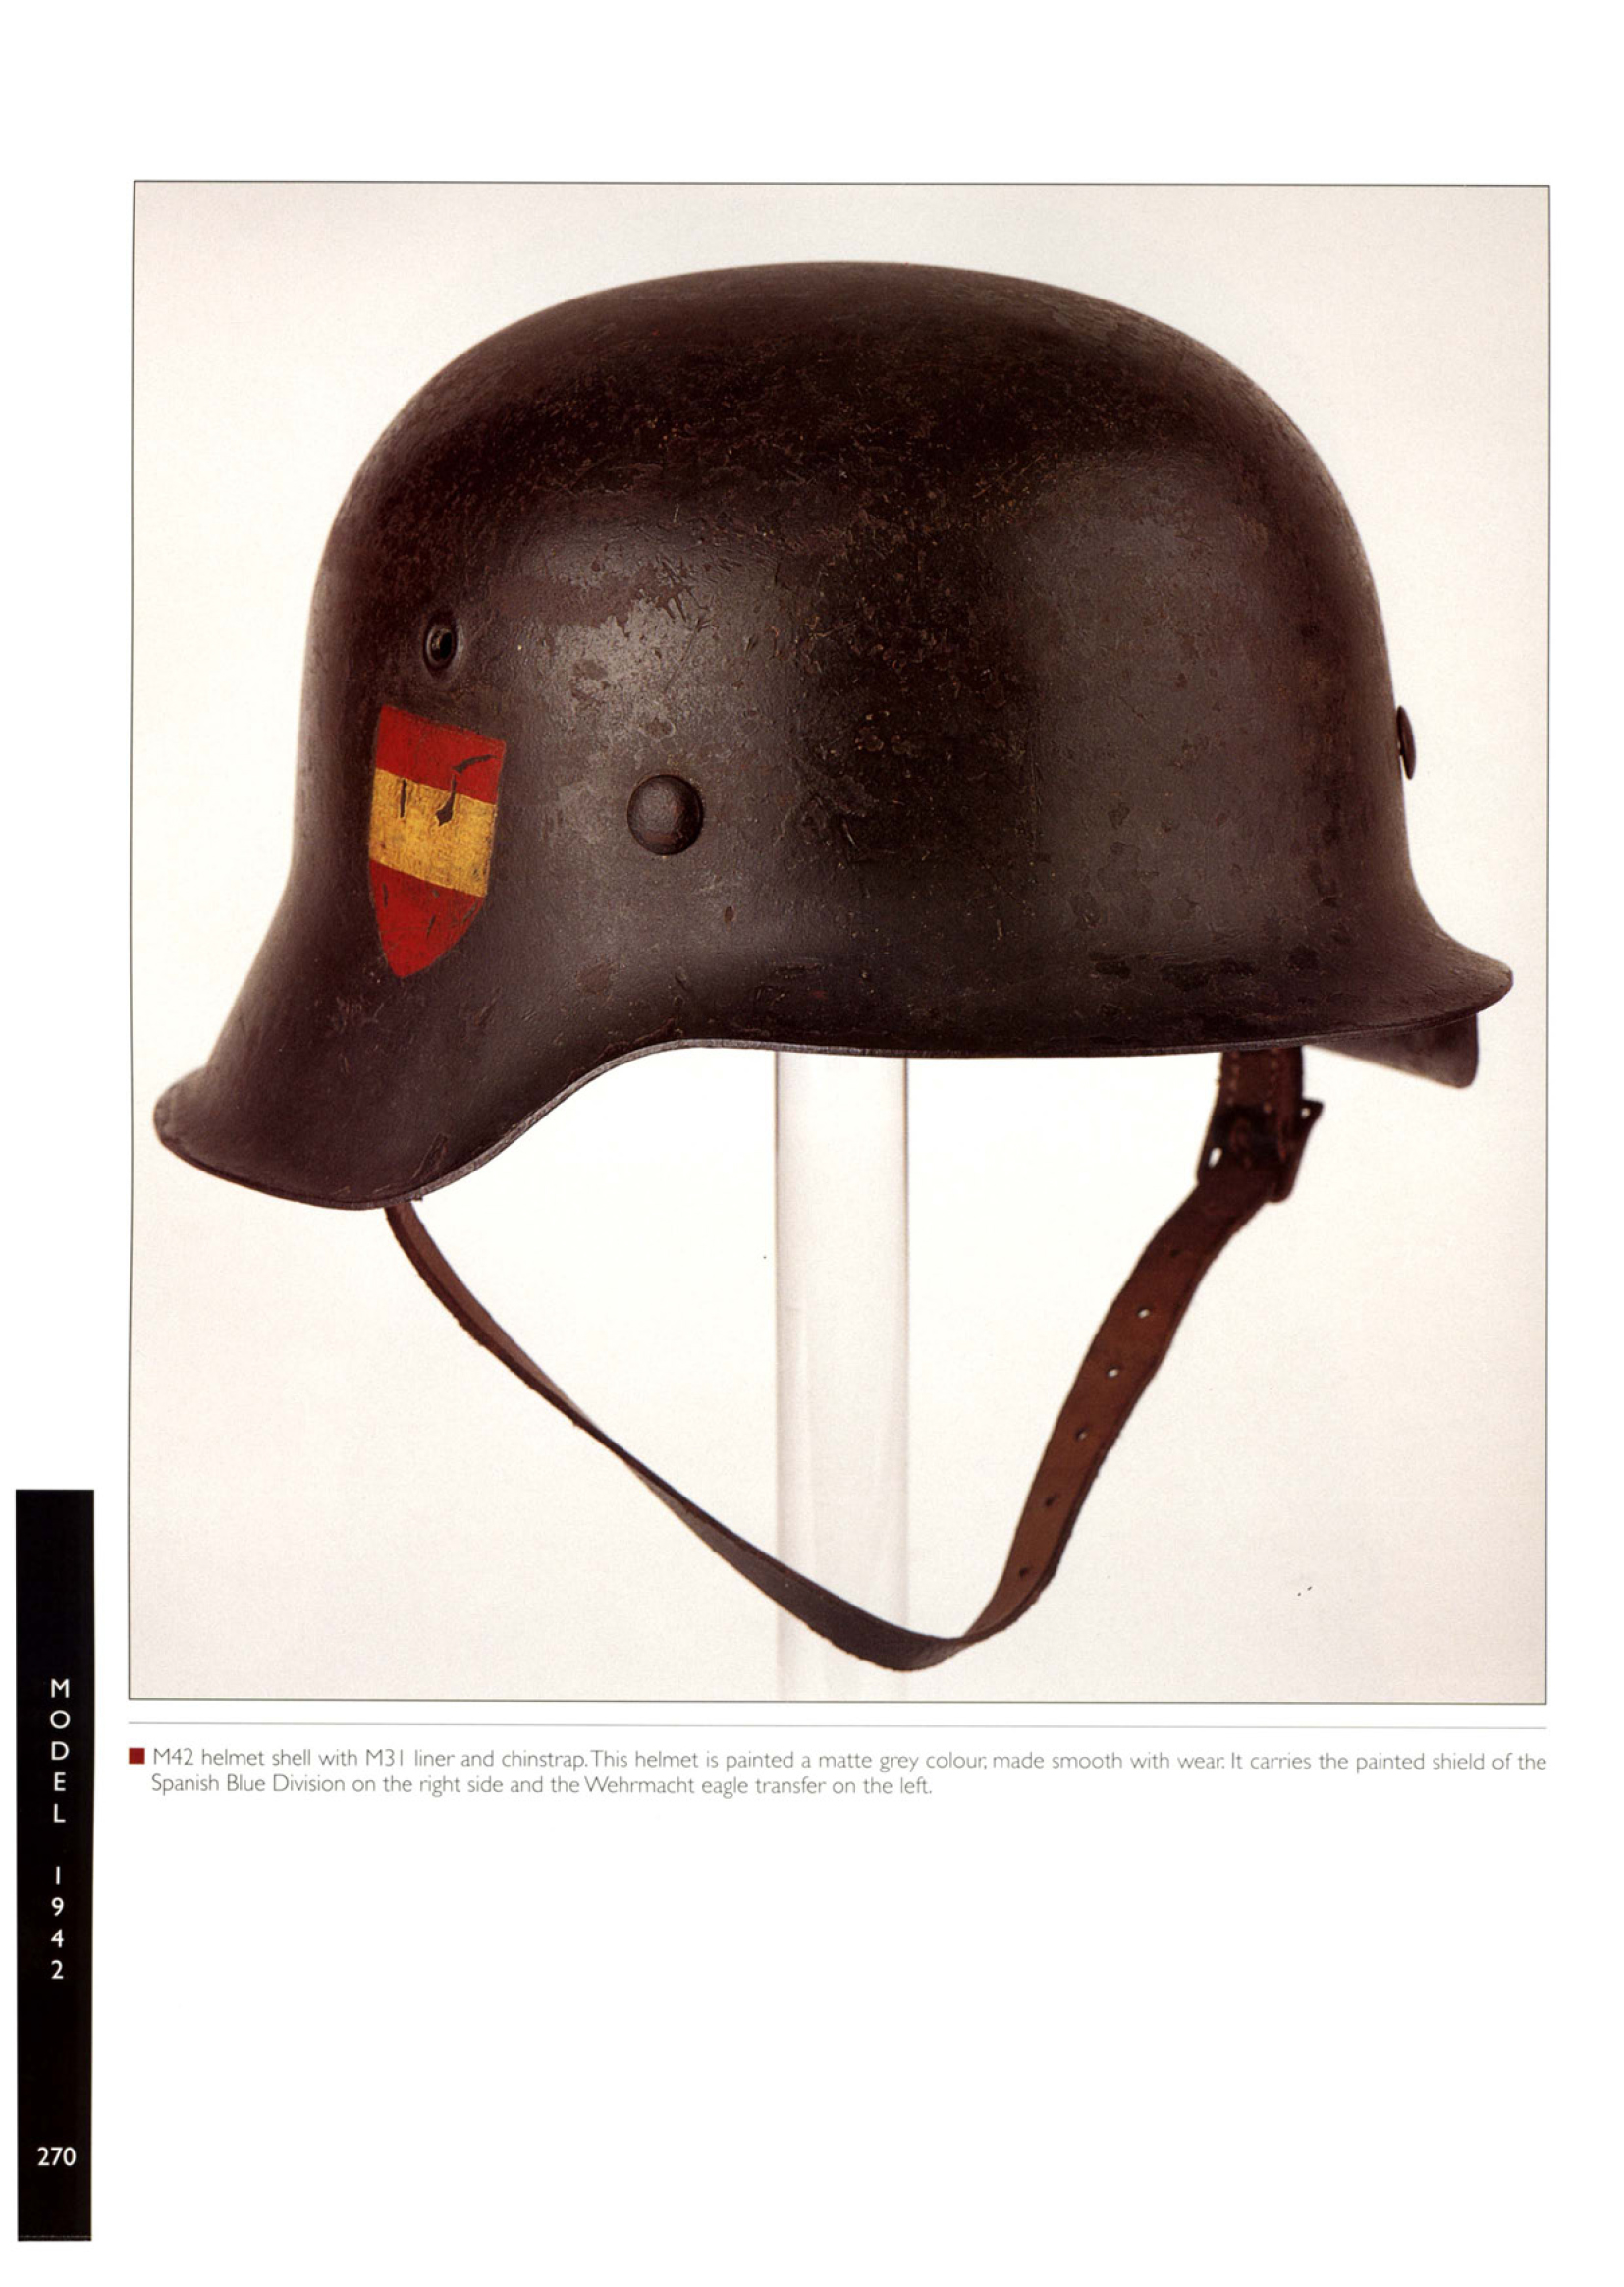 German Helmets of the Second World War-270.jpg